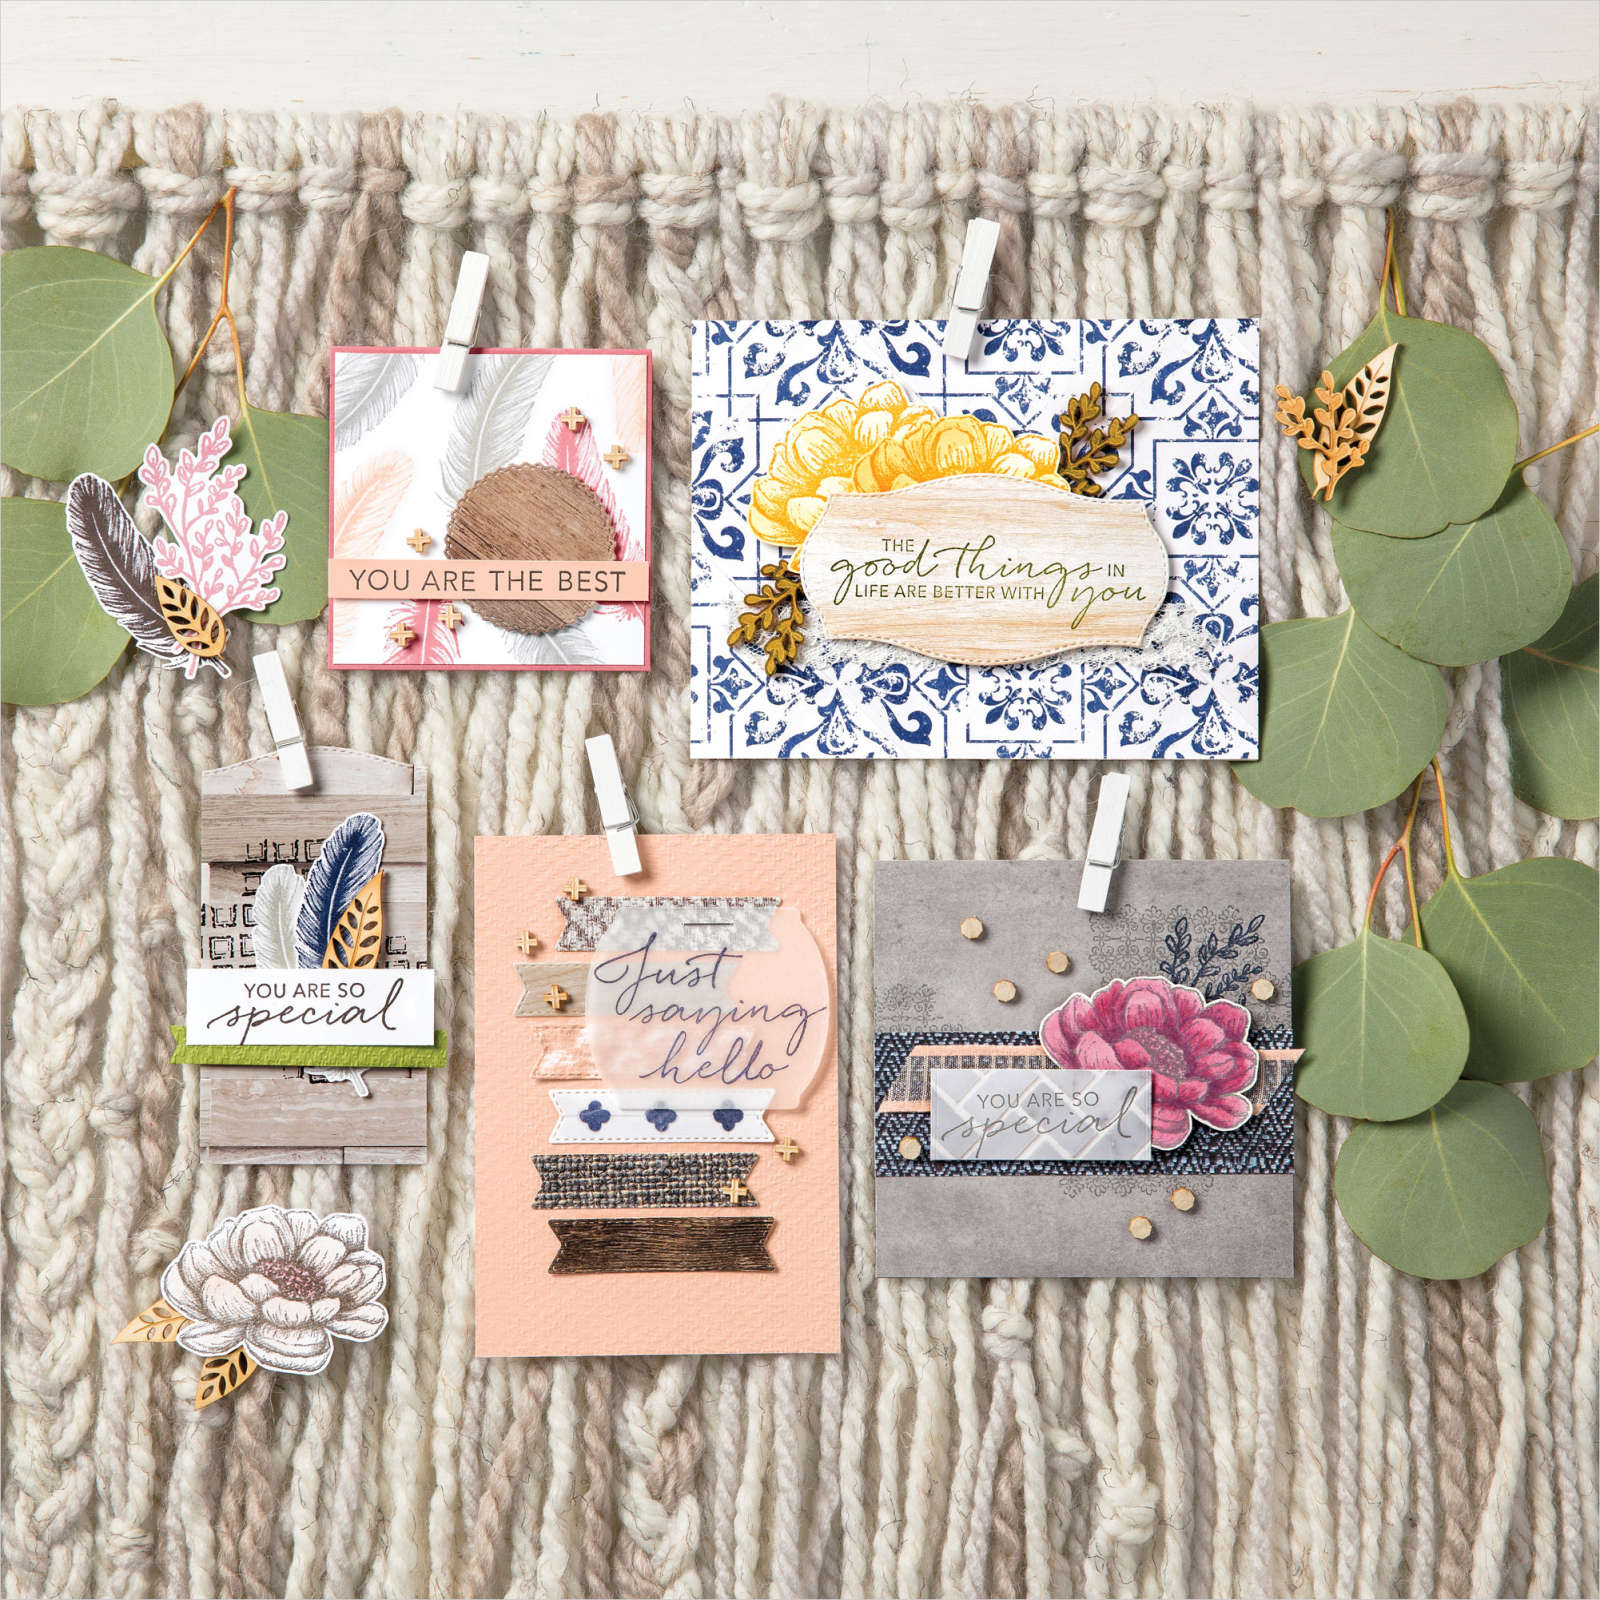 My Pink Candy Giveaway & Last Week's Winner plus a Goodie Bag w/ Stampin' Up! Sweet Strawberry!